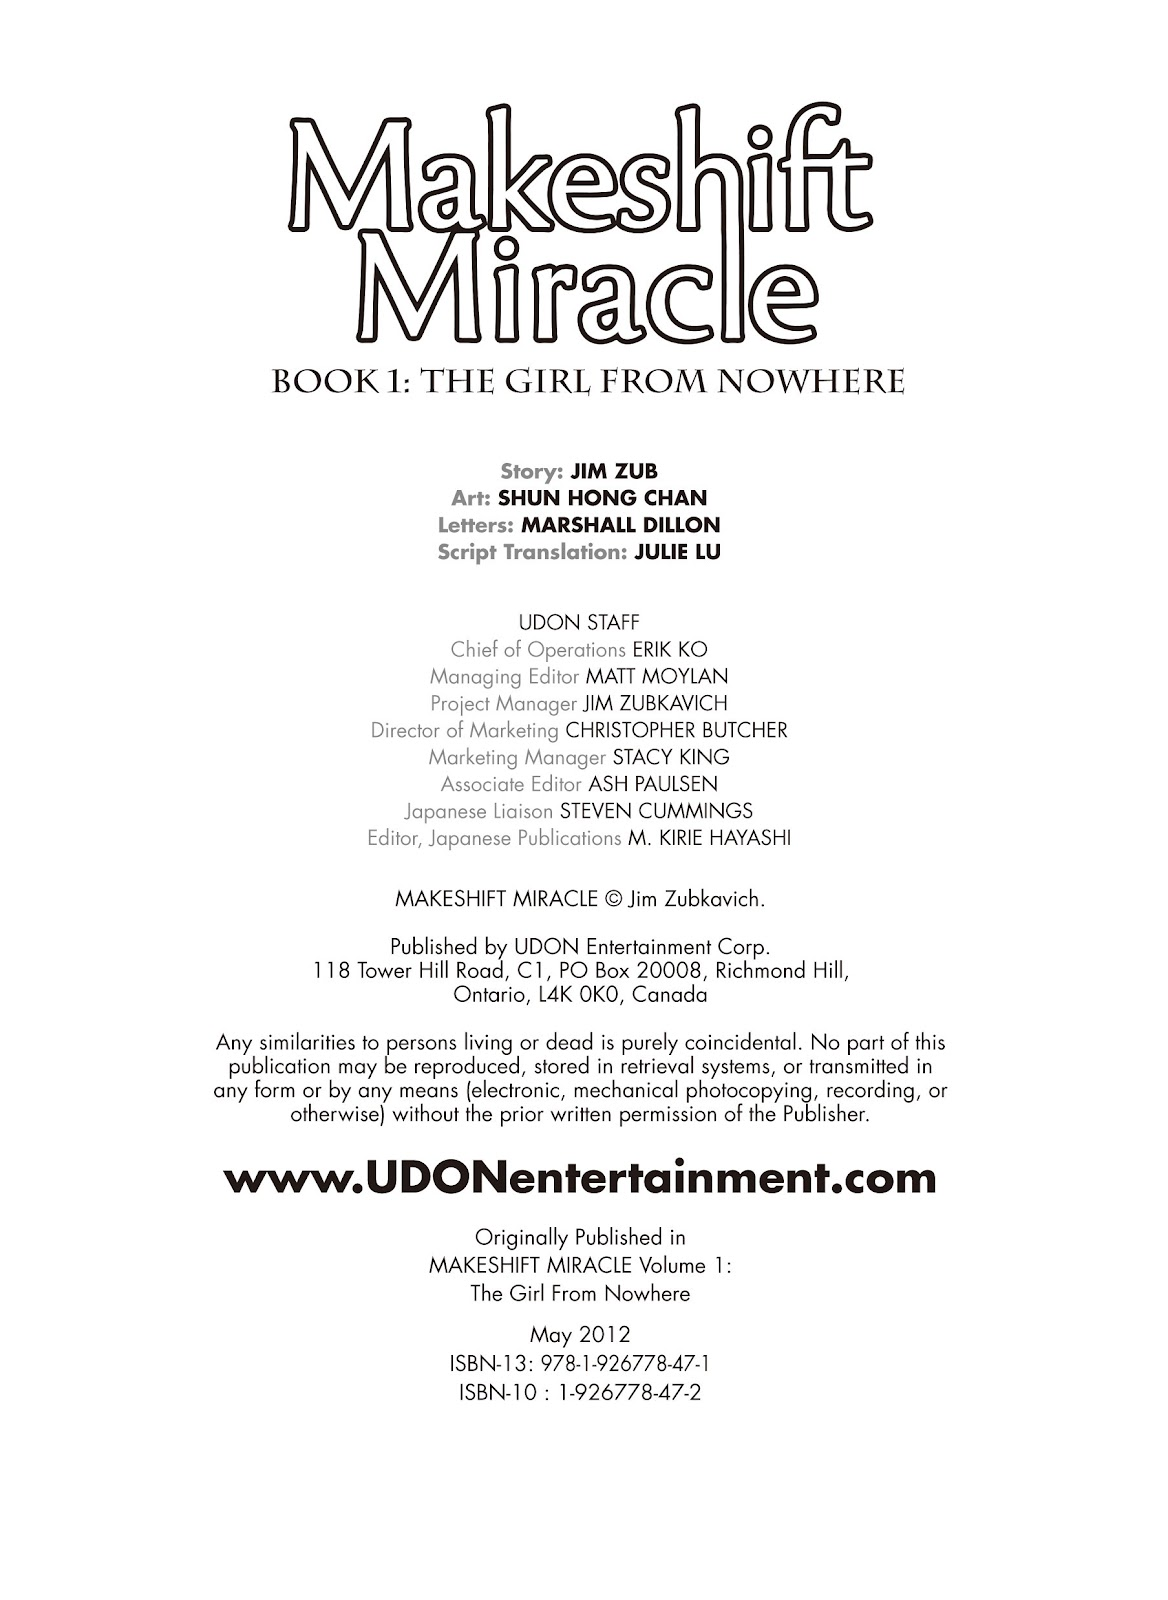 Read online Makeshift Miracle: The Girl From Nowhere comic -  Issue #2 - 2